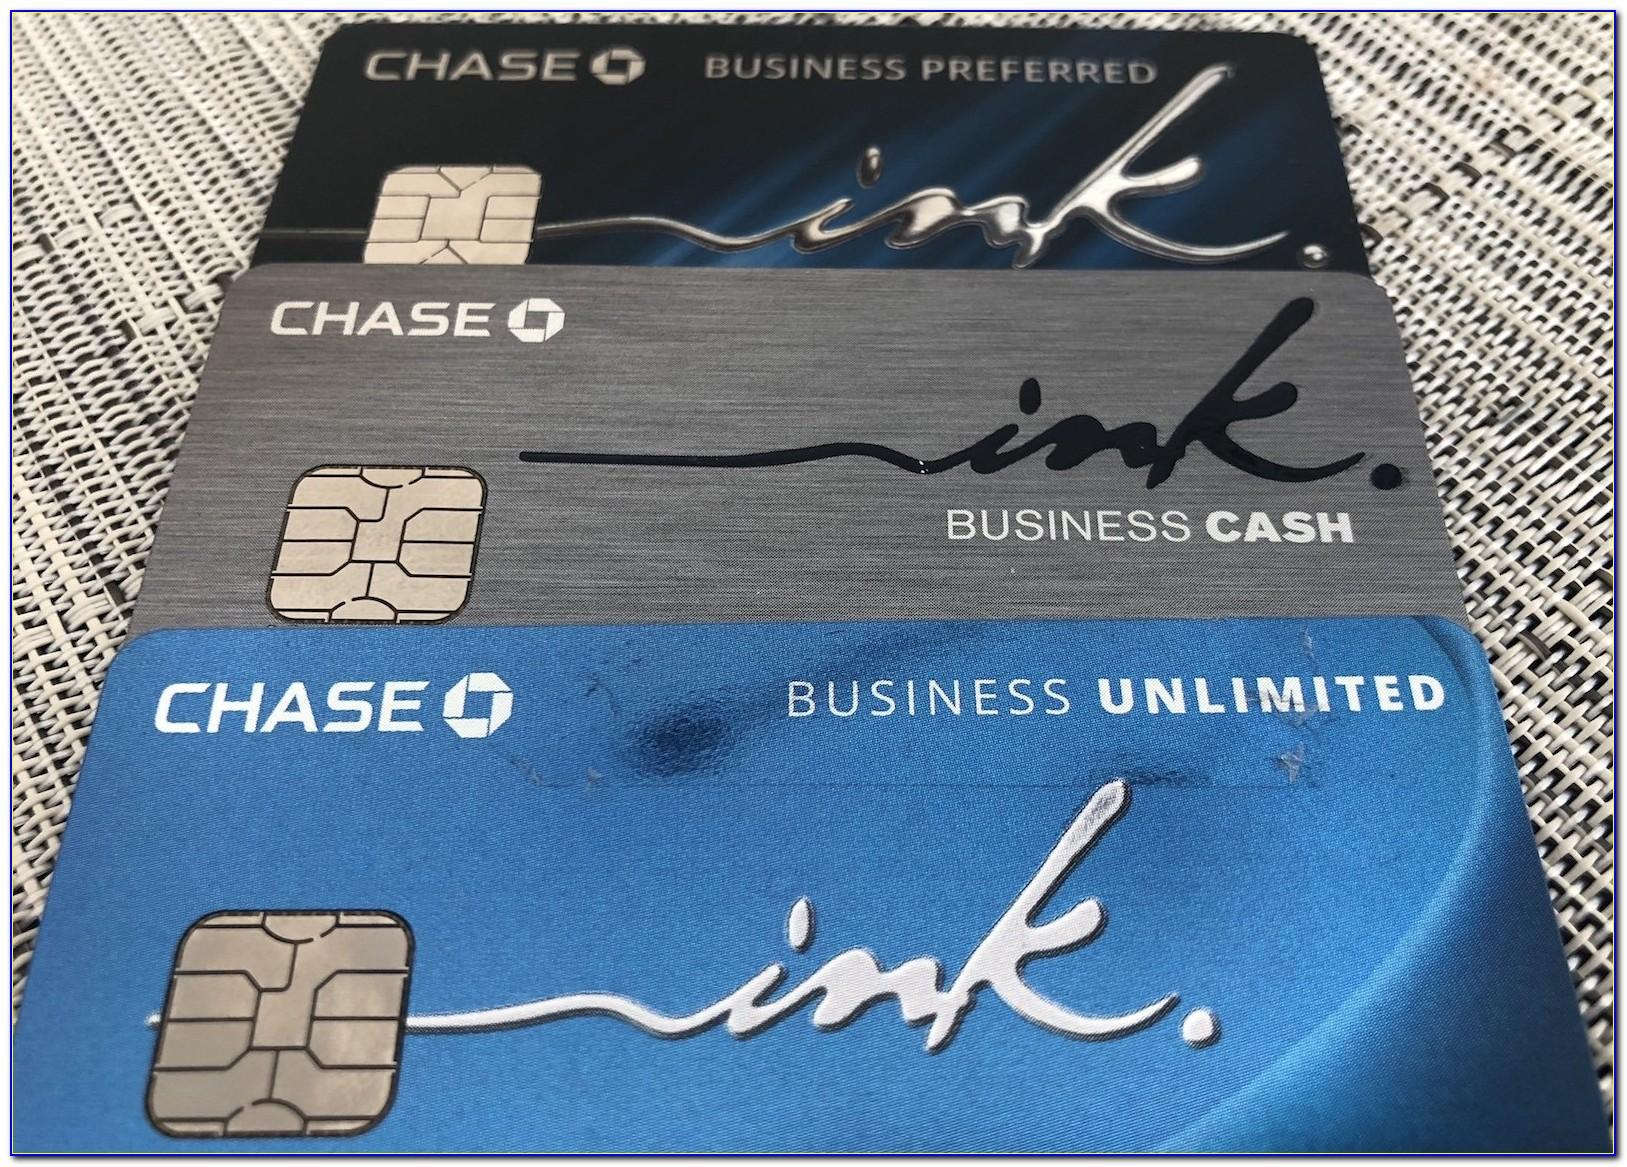 Chase Ink Business Card Login